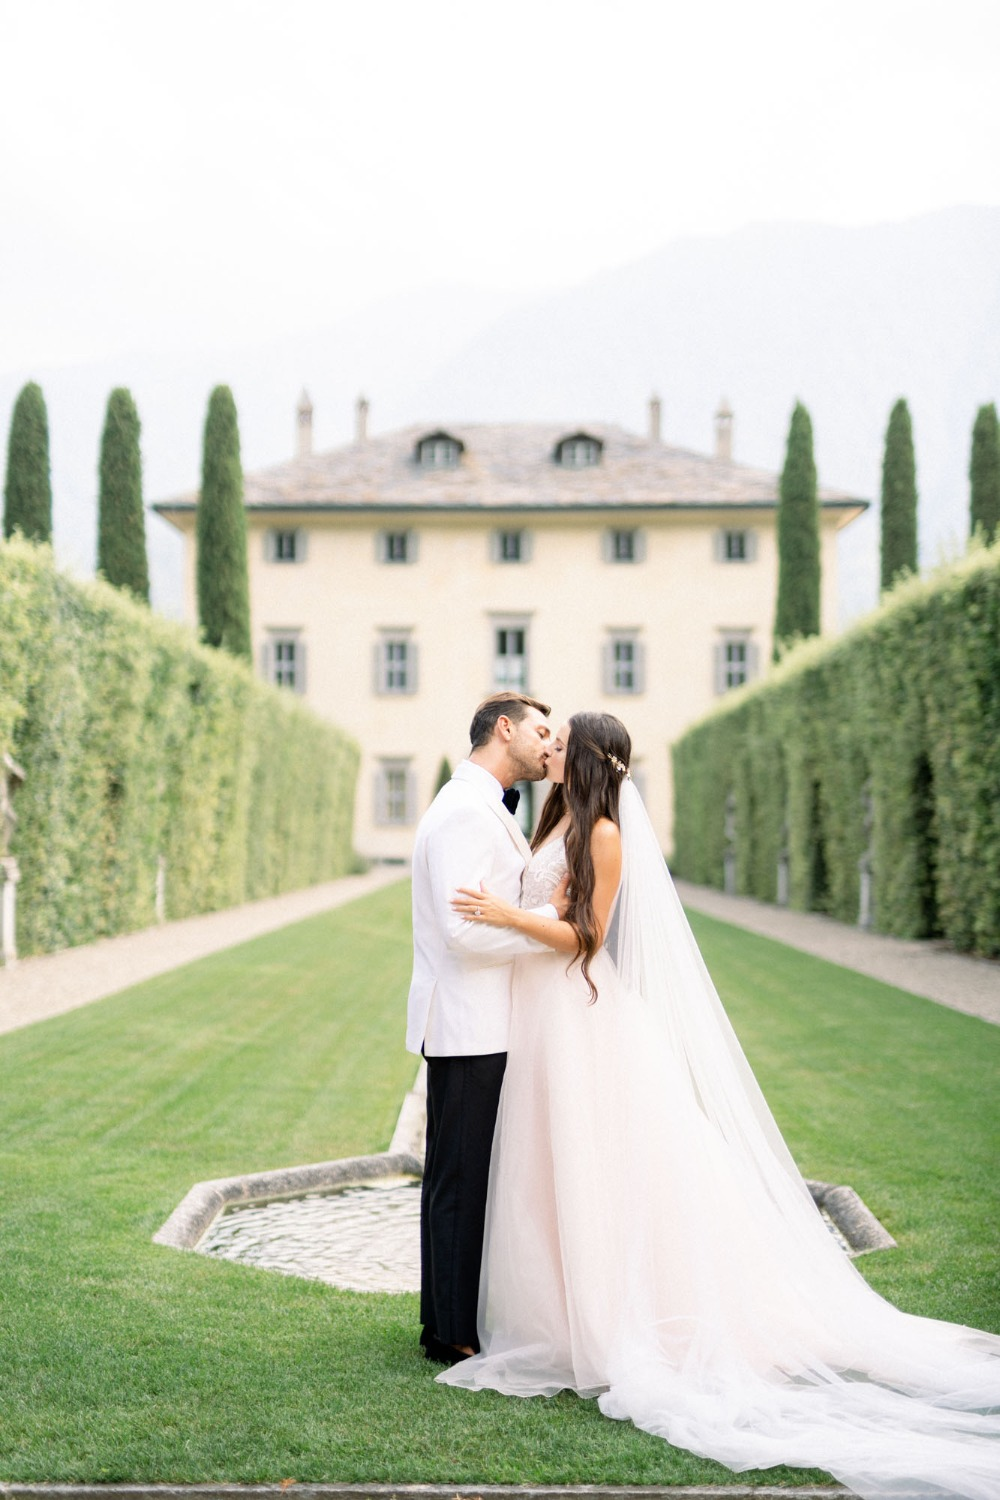 Villa Balbiano wedding venue in Italy